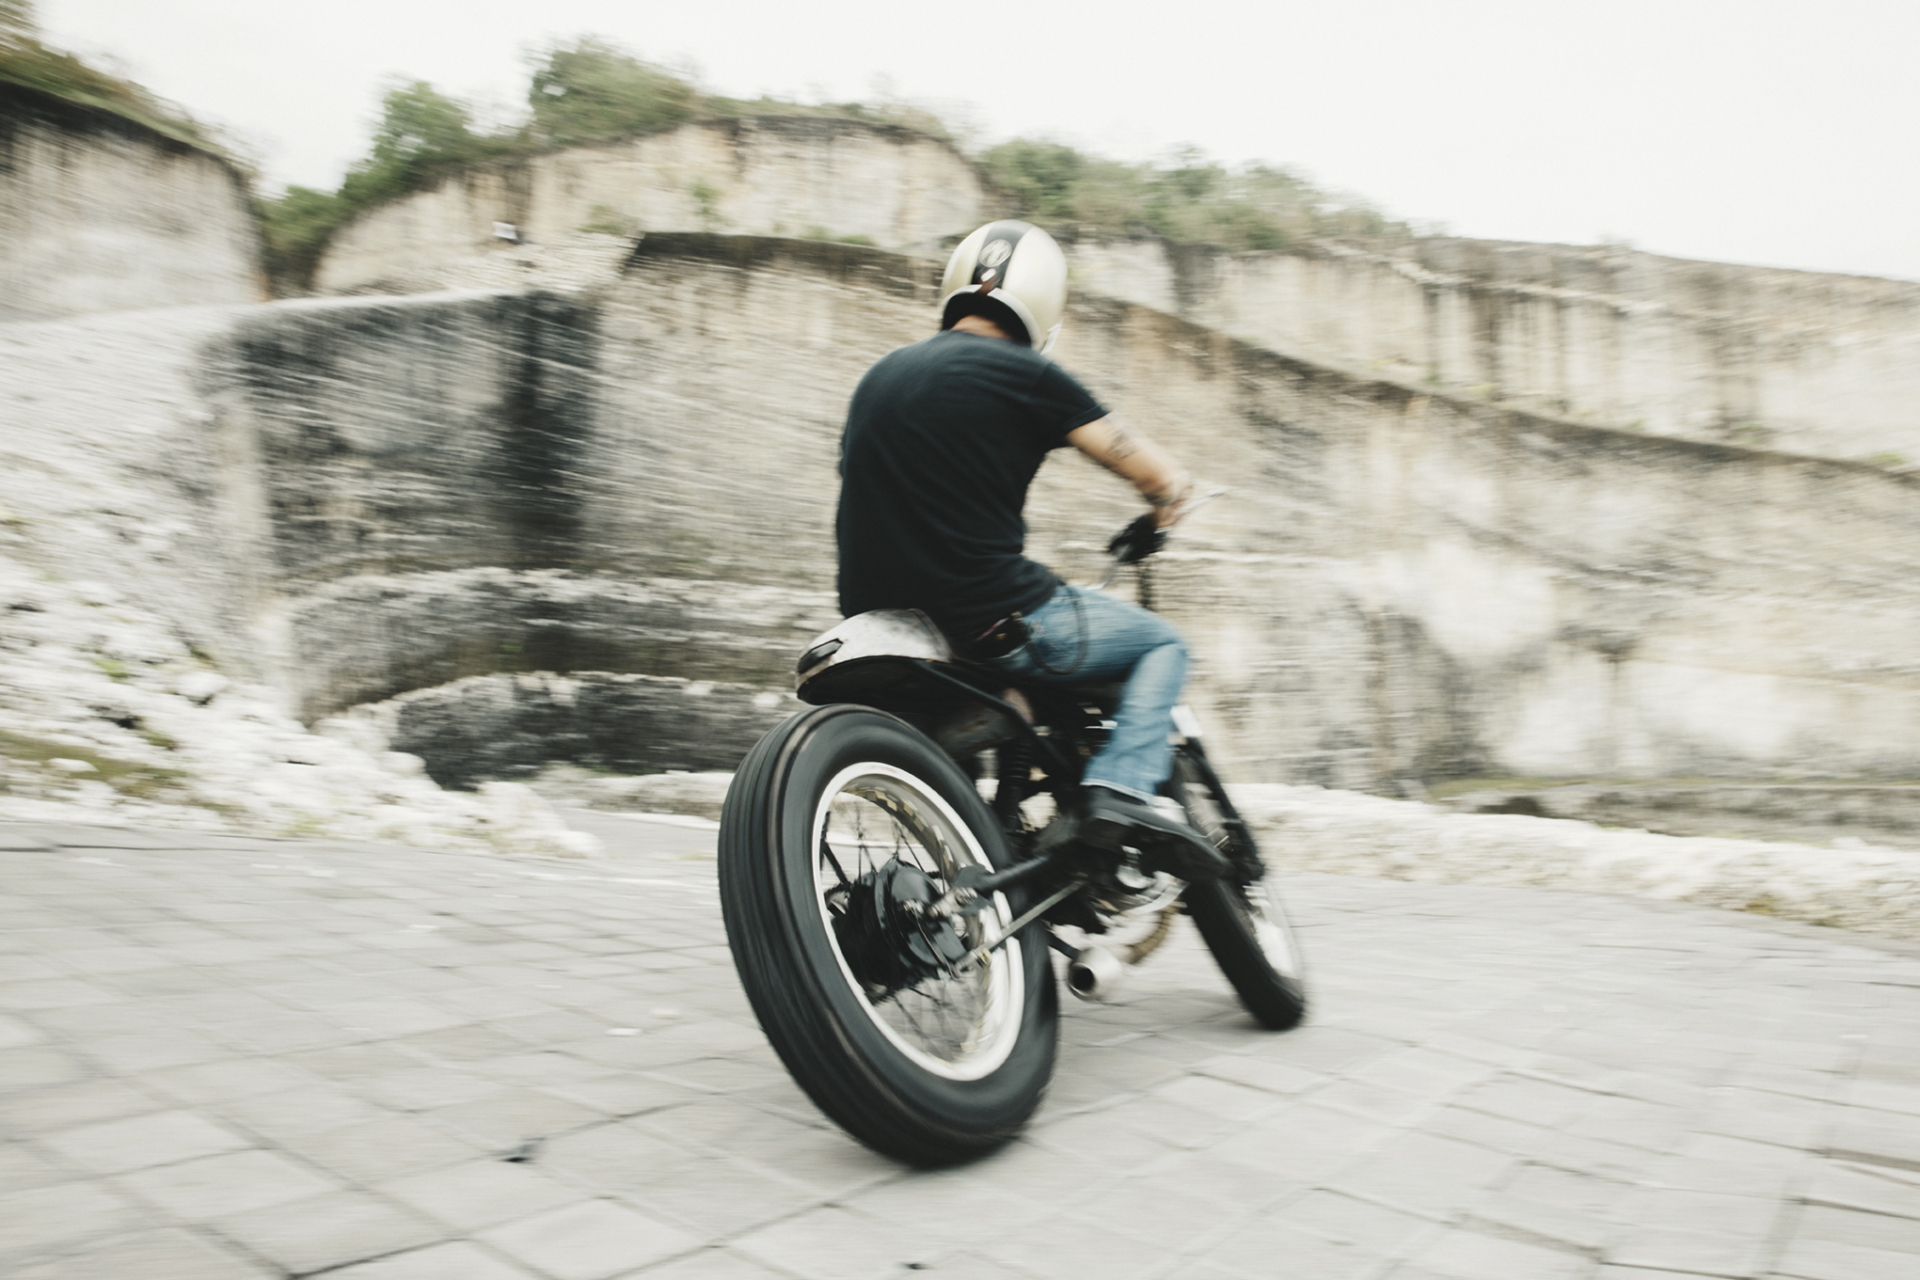 CARLES CARABÍ MALAMADRE MOTORCYCLES – THE AUTHENTIC CUSTOM RIDE